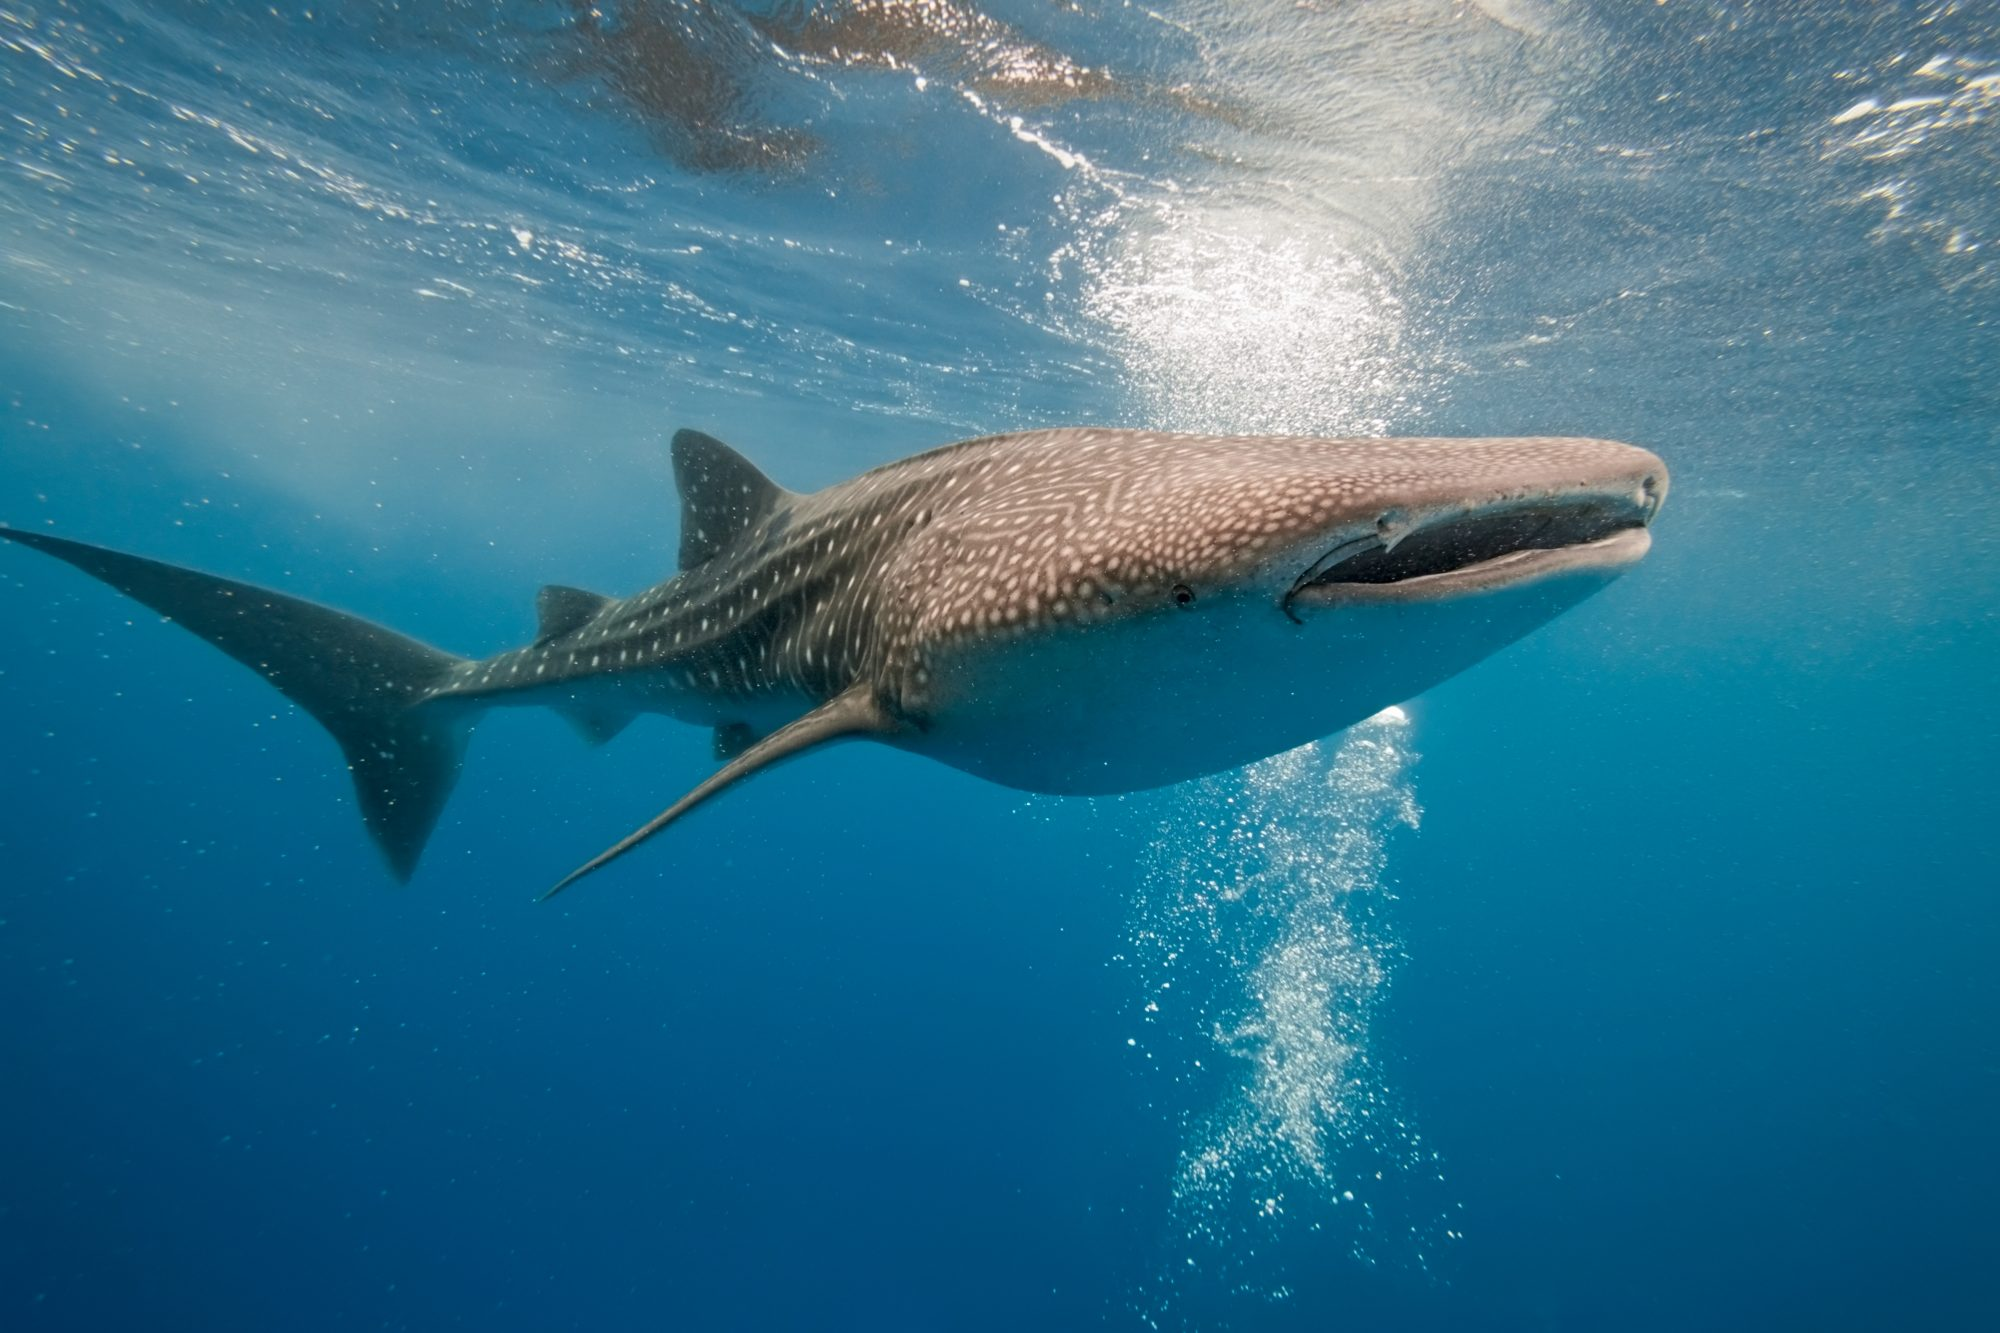 large whale shark in open water